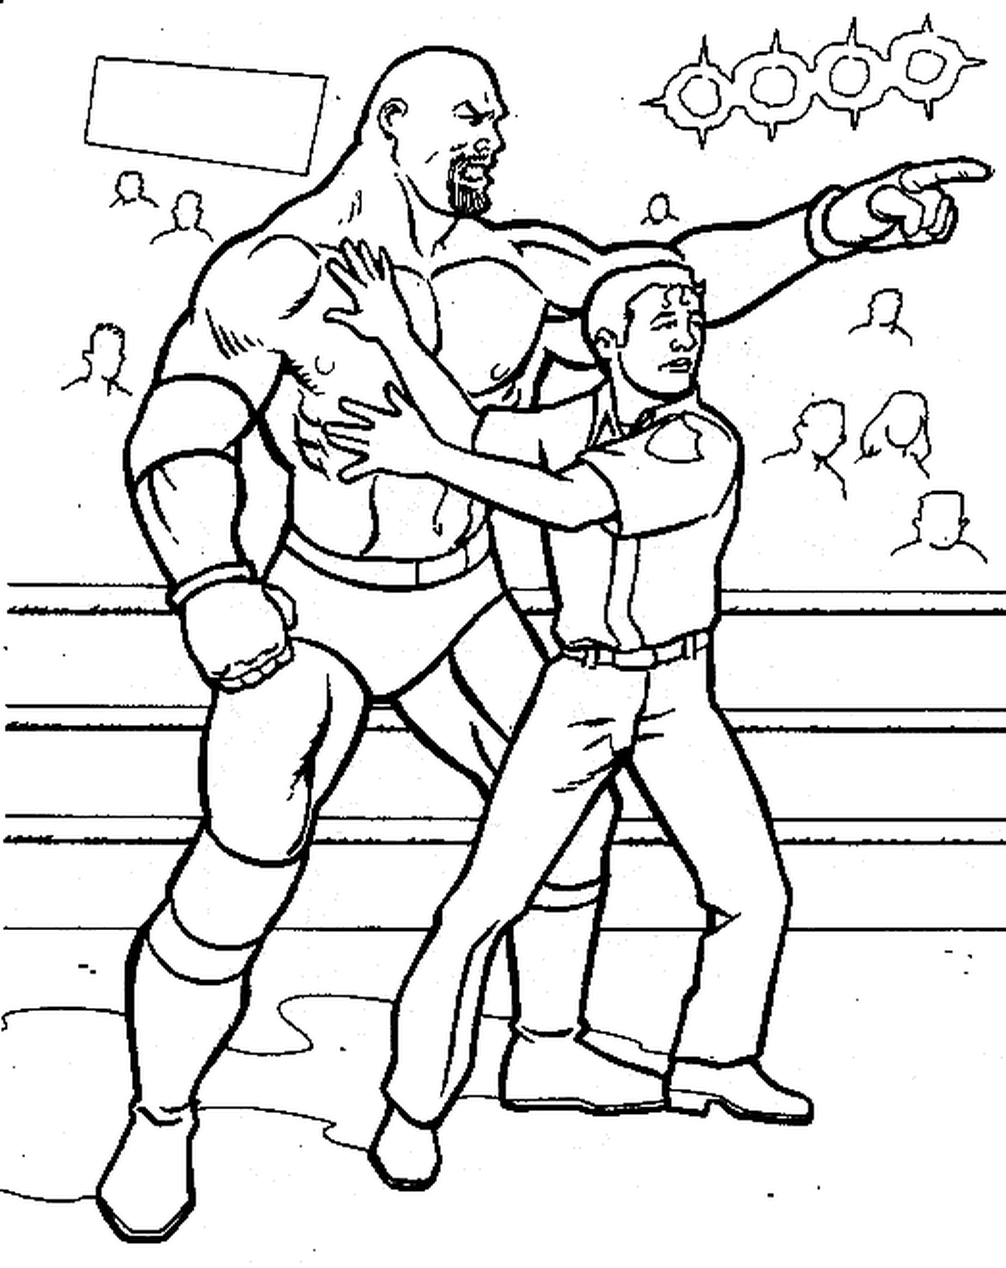 20 Free Printable WWE Coloring Pages